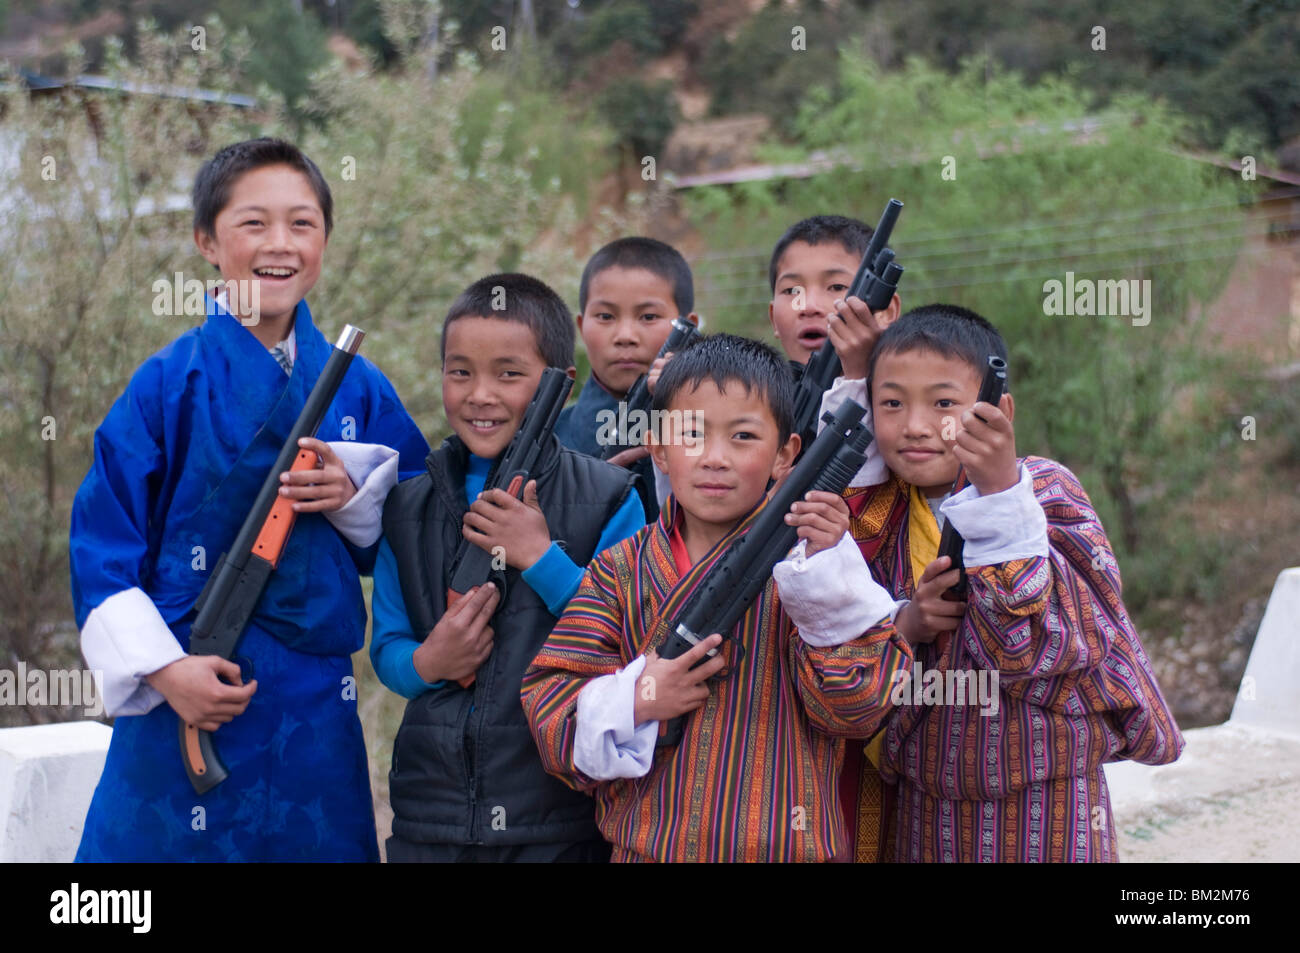 Young Bhutanese boys playing with their toy guns, Paro, Bhutan - Stock Image